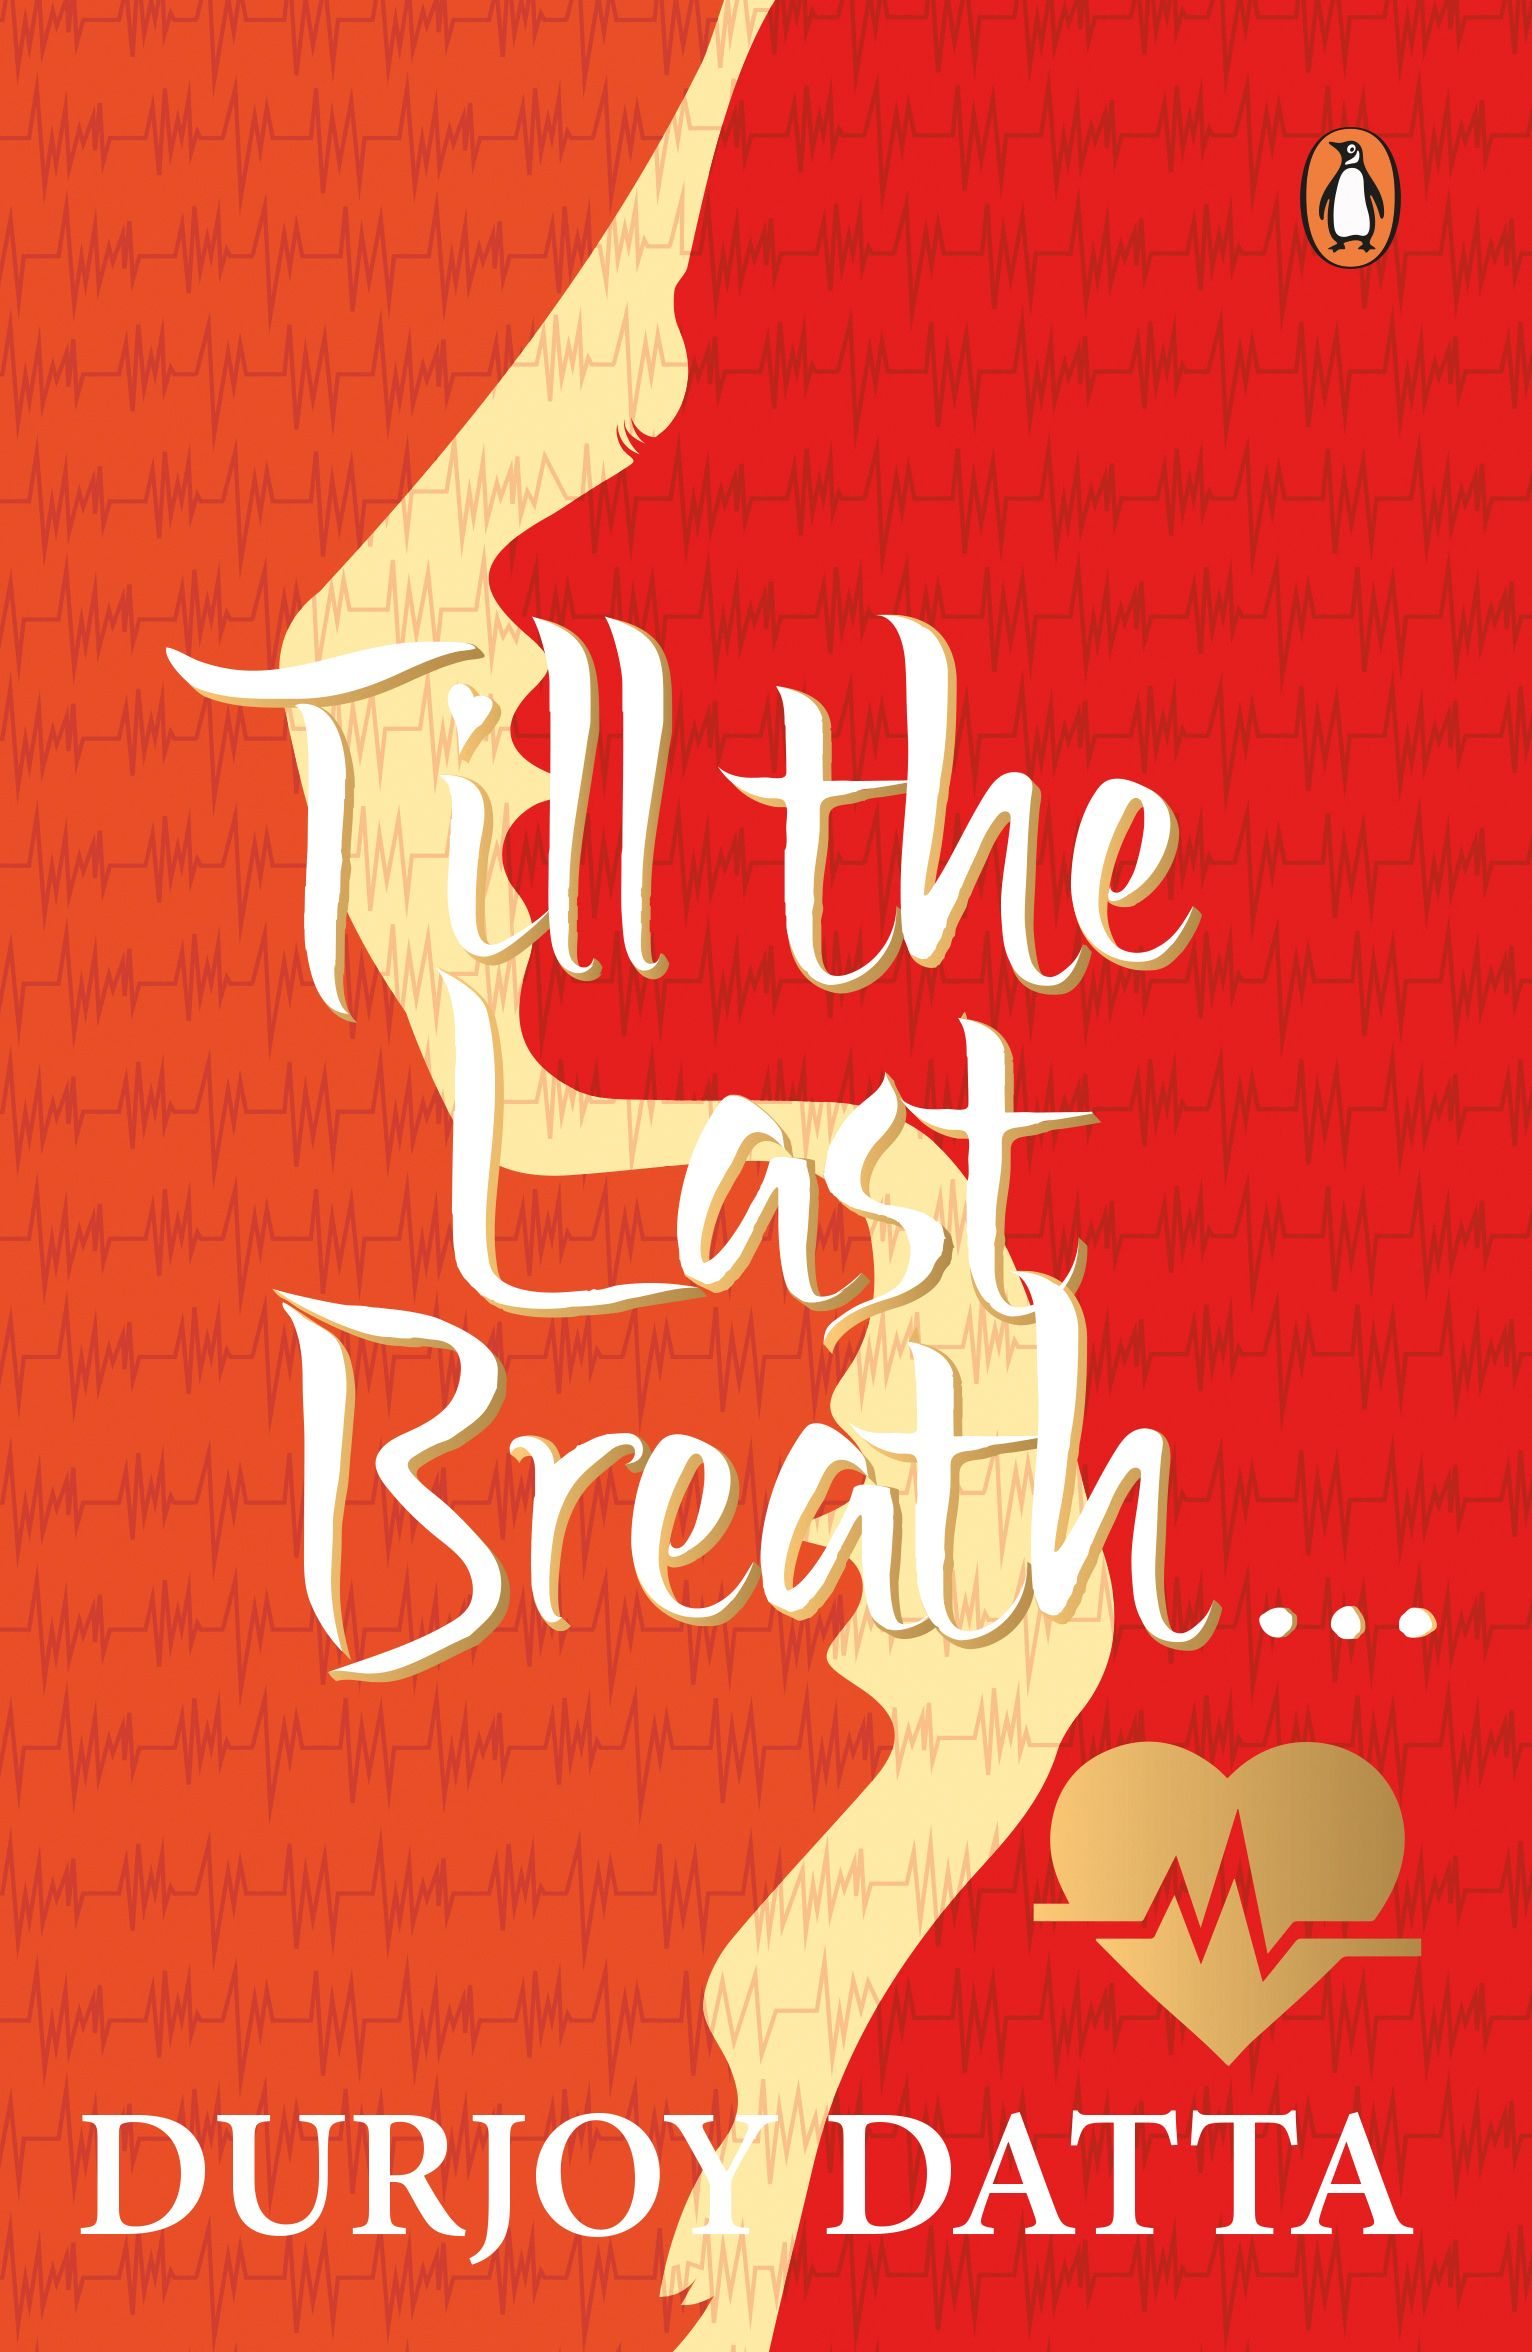 Cover for Durjoy Datta's Till the Last Breath ~ Cover design and  illustration by Neelima P Aryan